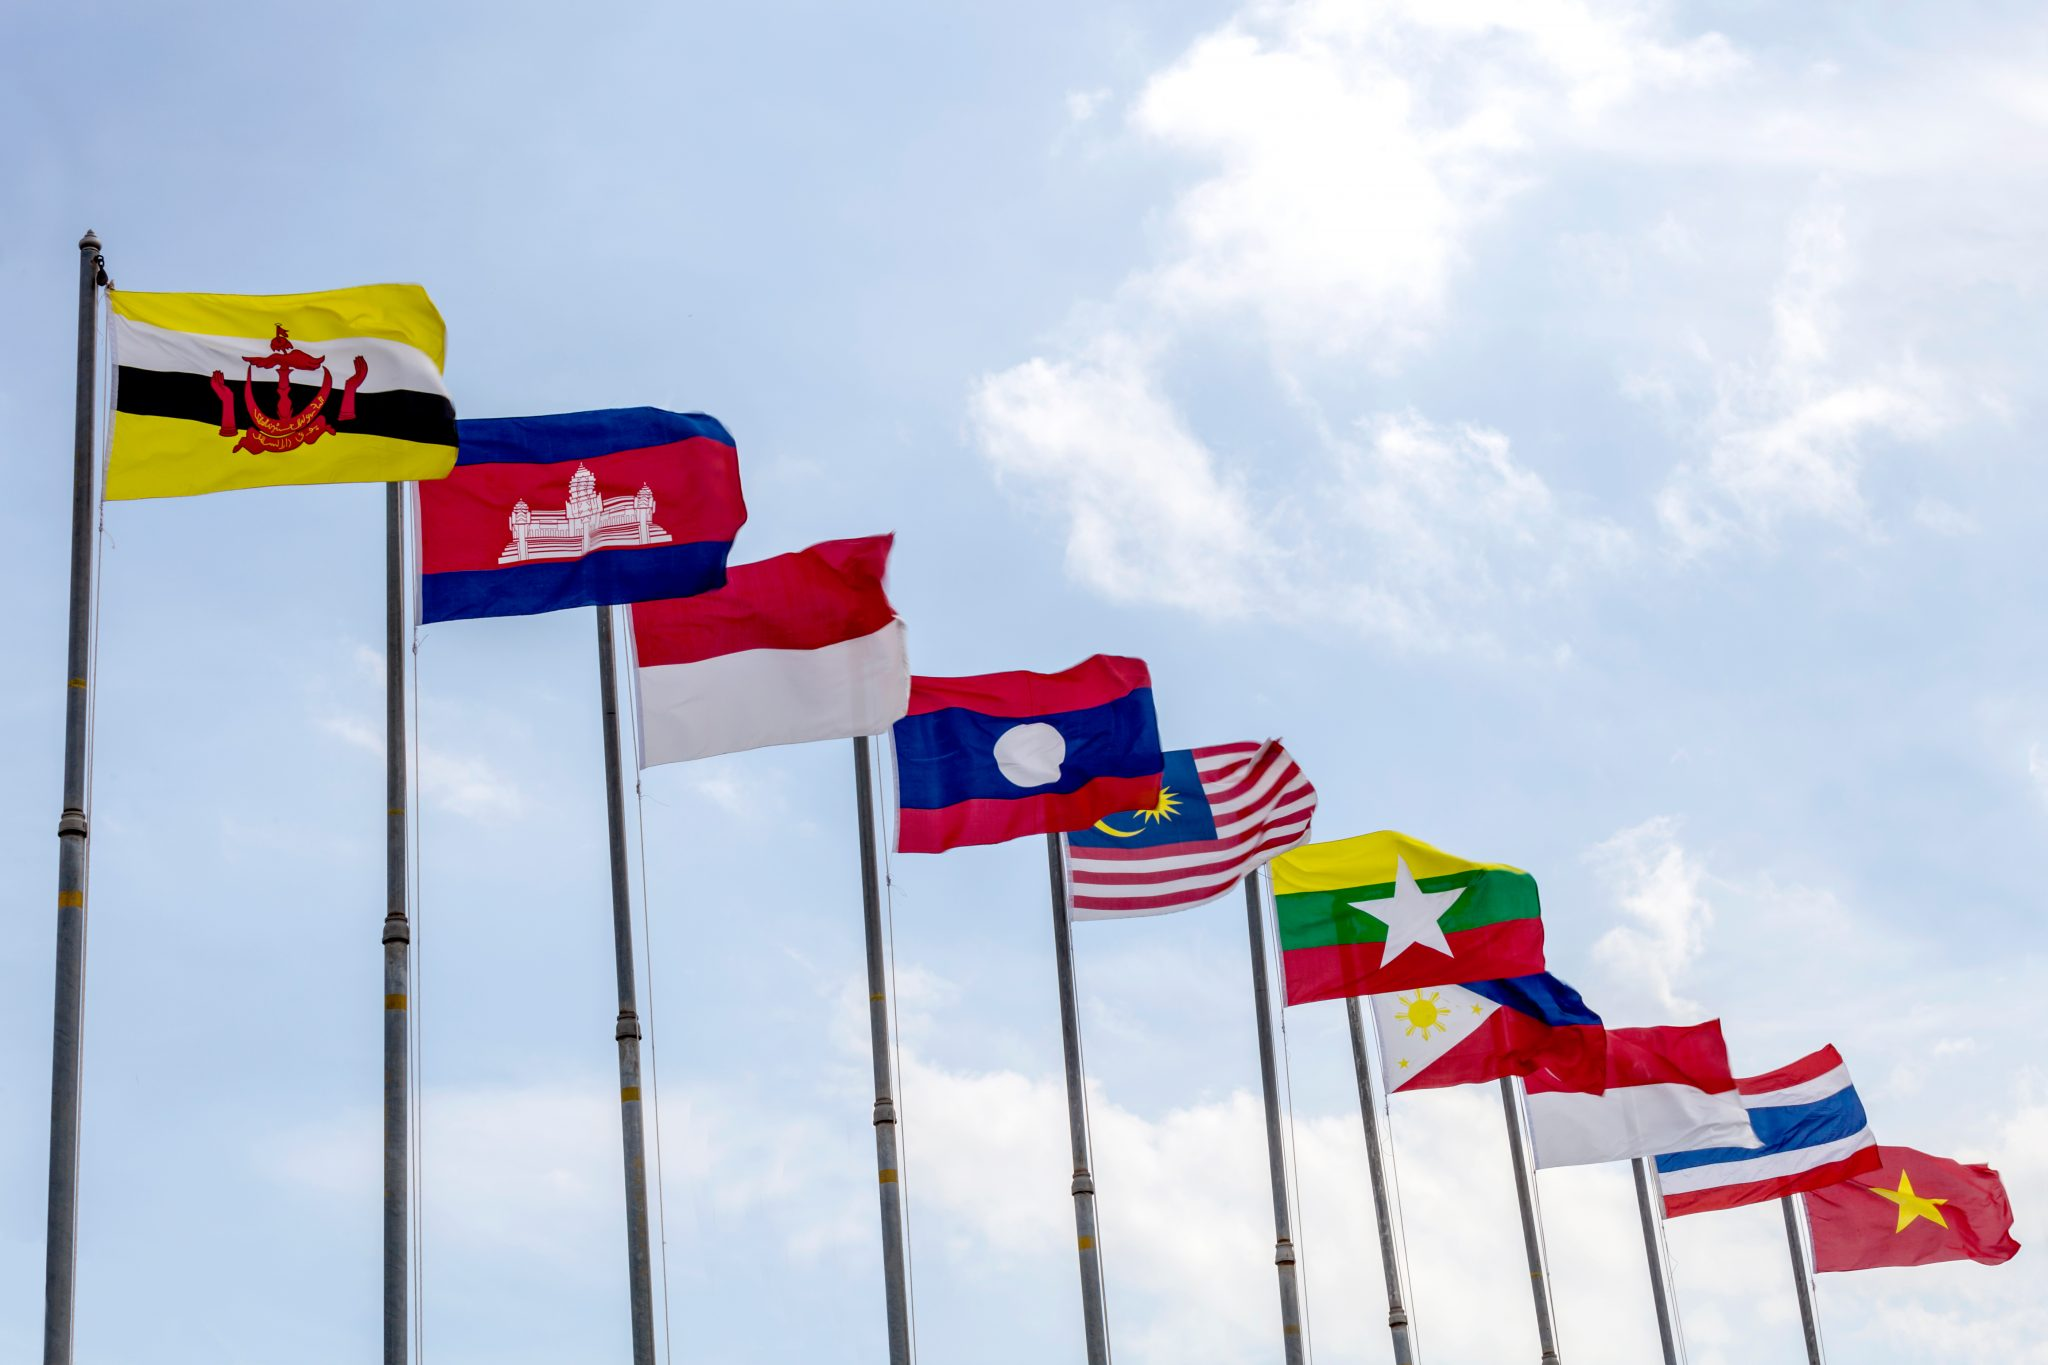 Flags of Southeast asia countries, AEC, ASEAN Economic Community